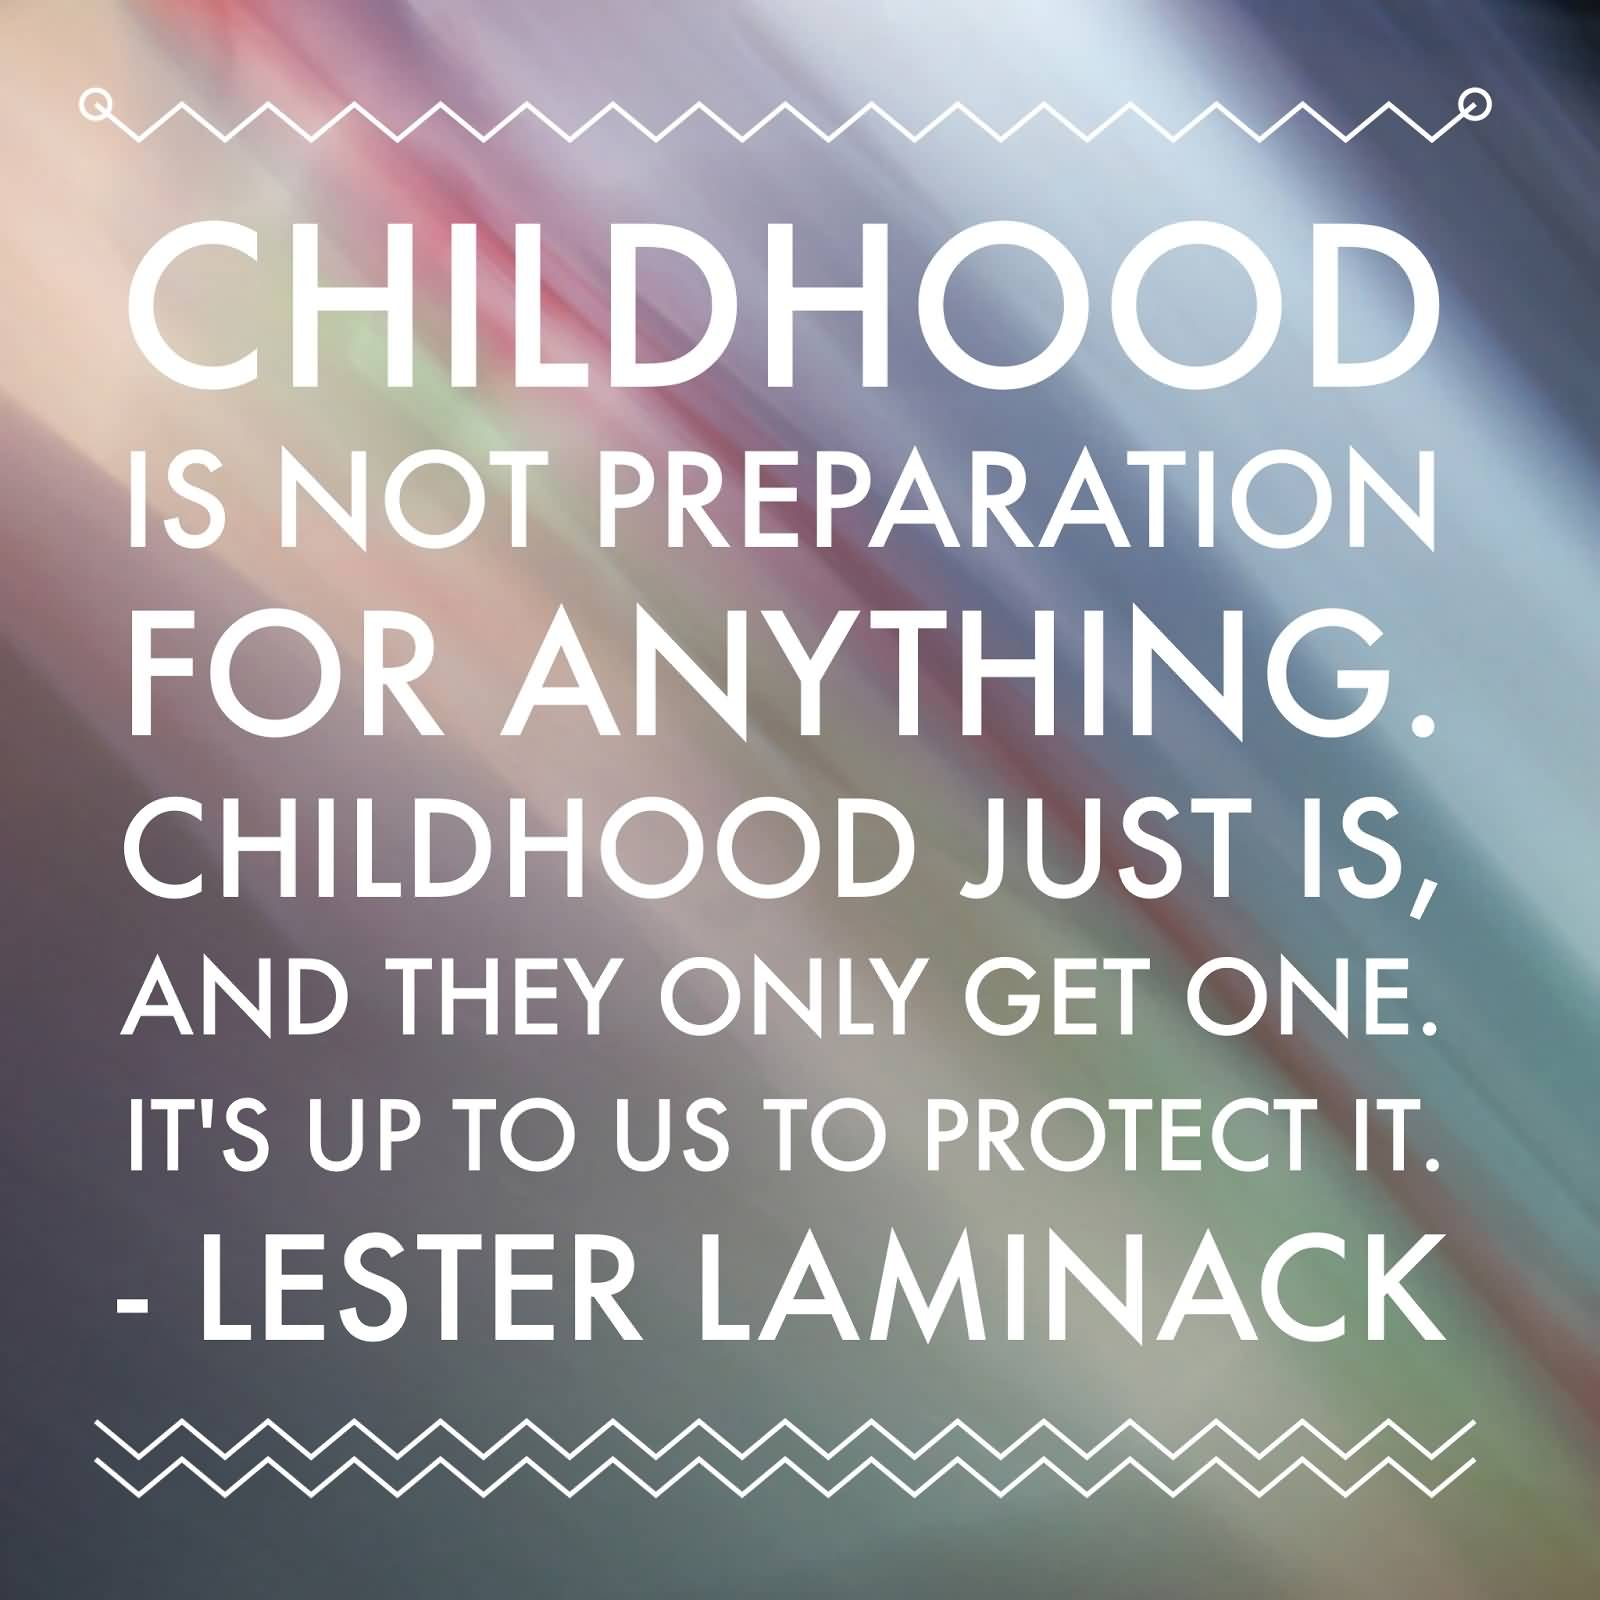 Childhood is not preparation for anything. Childhood just is, and they only get one. It's up to us to protect it.